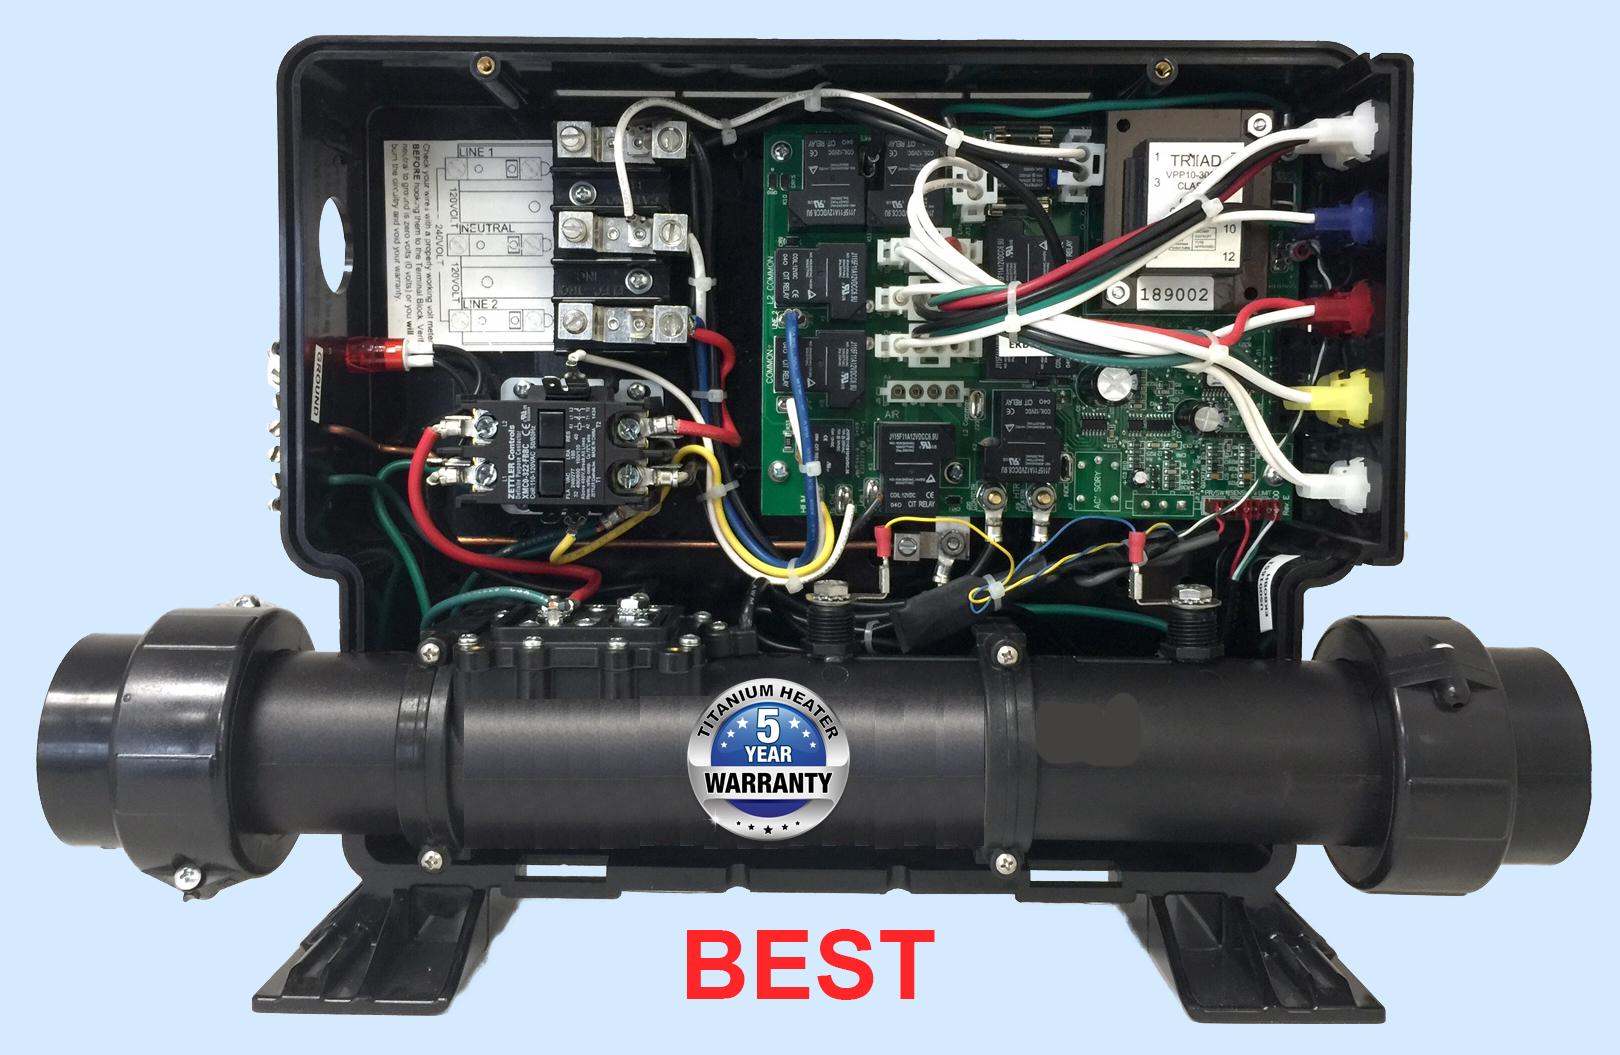 USC_CosmoHeat_Warranty_Open_best replacement classact spas heater for $19 95 free freight mfg jacuzzi wiring diagram at edmiracle.co